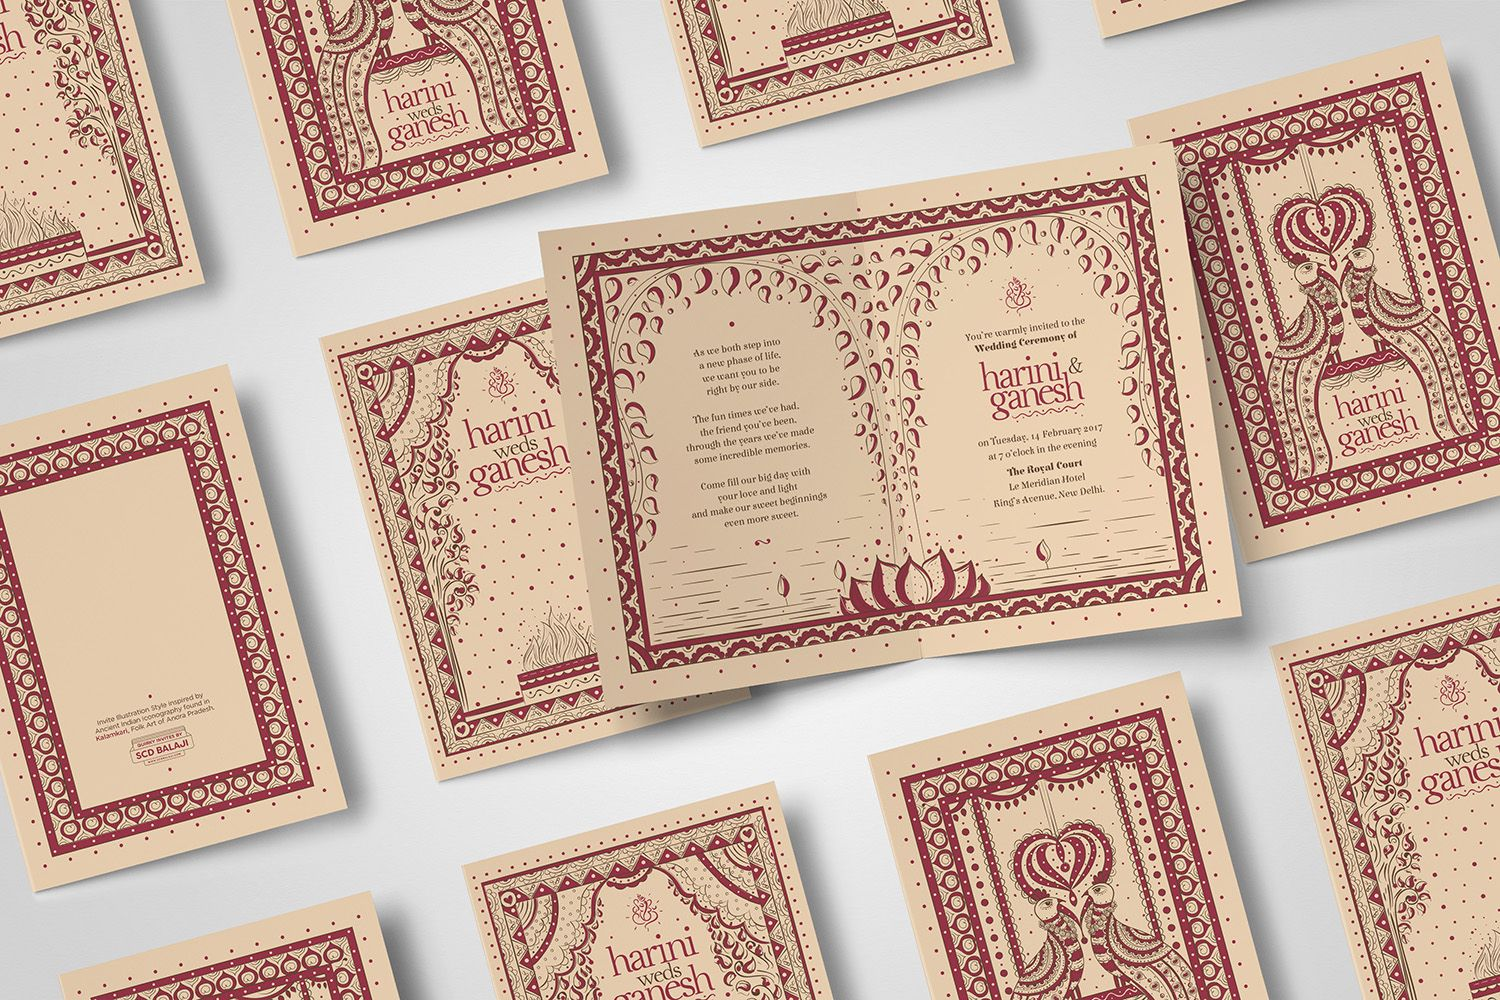 indian wedding invitations cards uk%0A An Indian Illustrator specialised in Artistic Branding for Startups  Indian  Folk Art Illustrations and Invite Illustrations